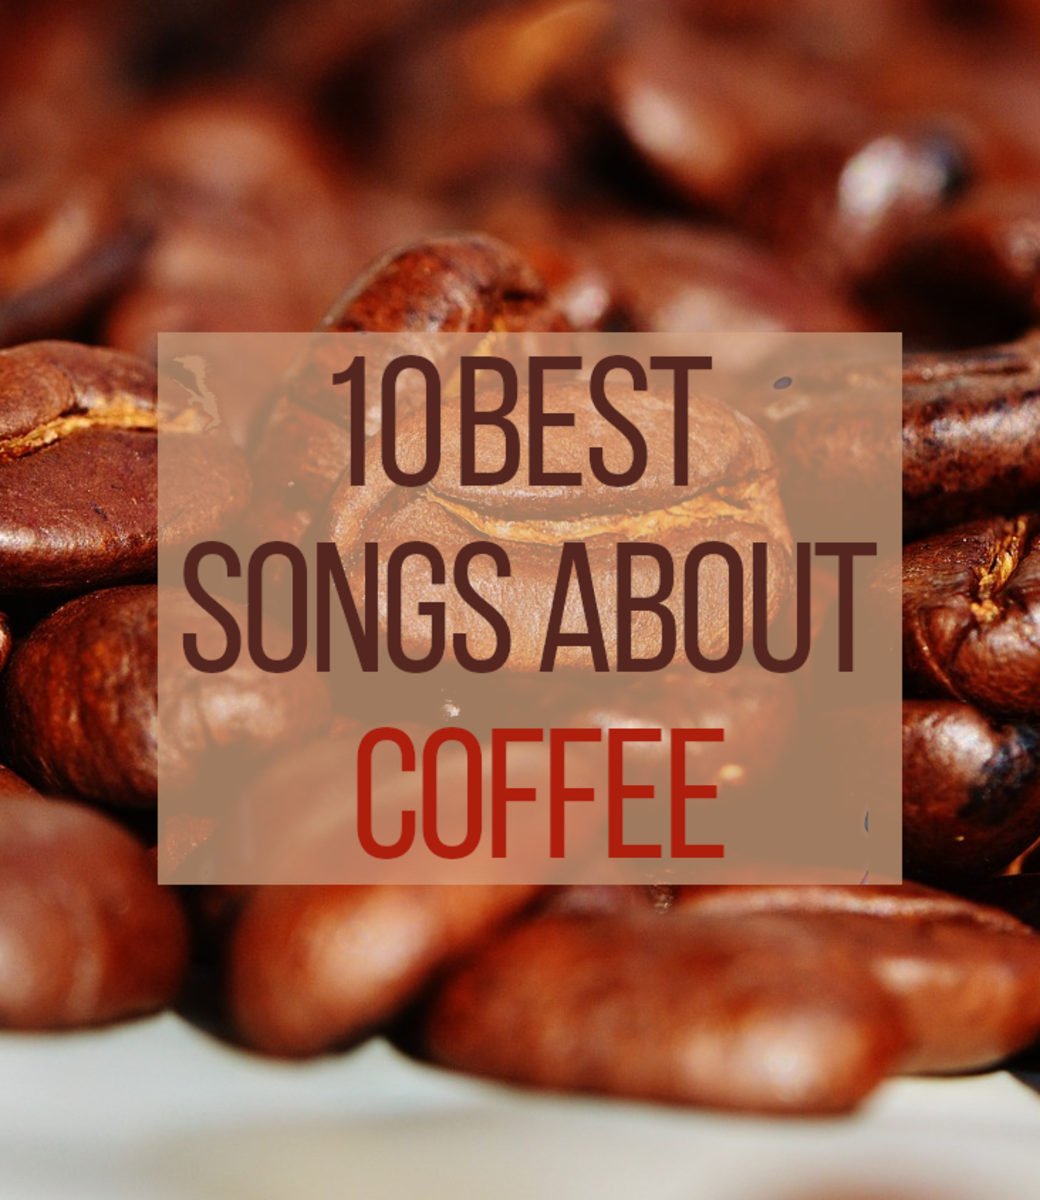 The Top 10 Best Songs About Coffee